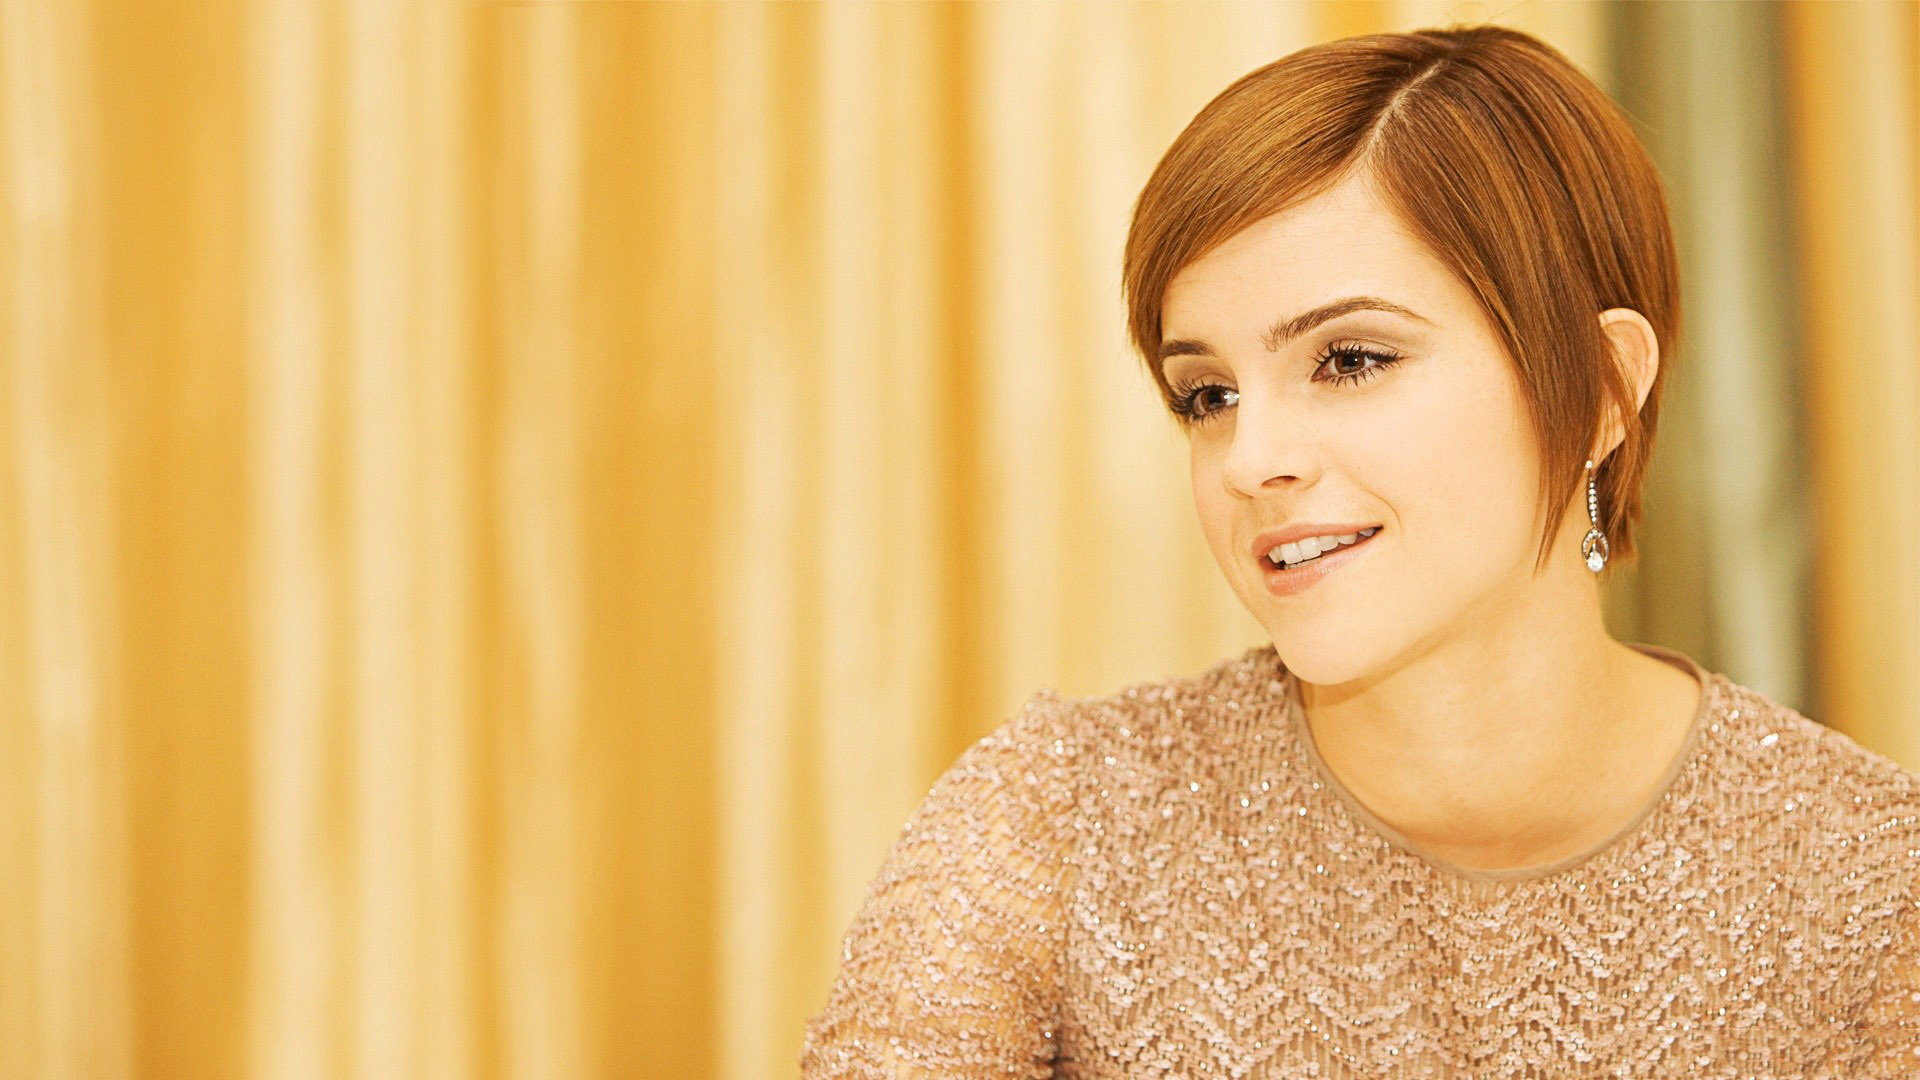 emma watson stunning beauty look pose background mobile free hd desktop images